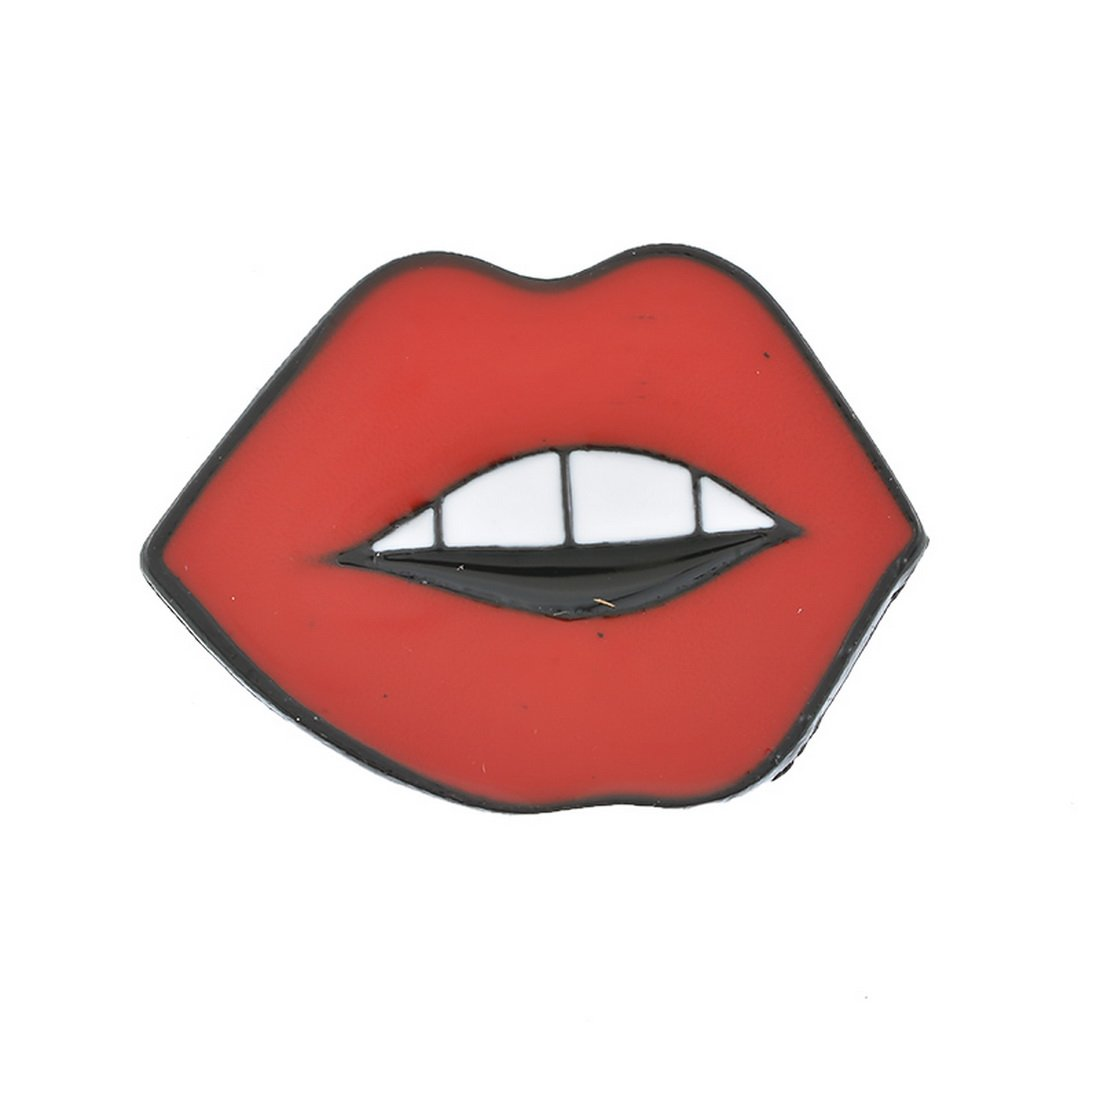 Souarts Womens Red Lip Shaped Enamel Brooch Pin Badge for Clothes Bags Backpacks Lapel Pin Hellocrafts